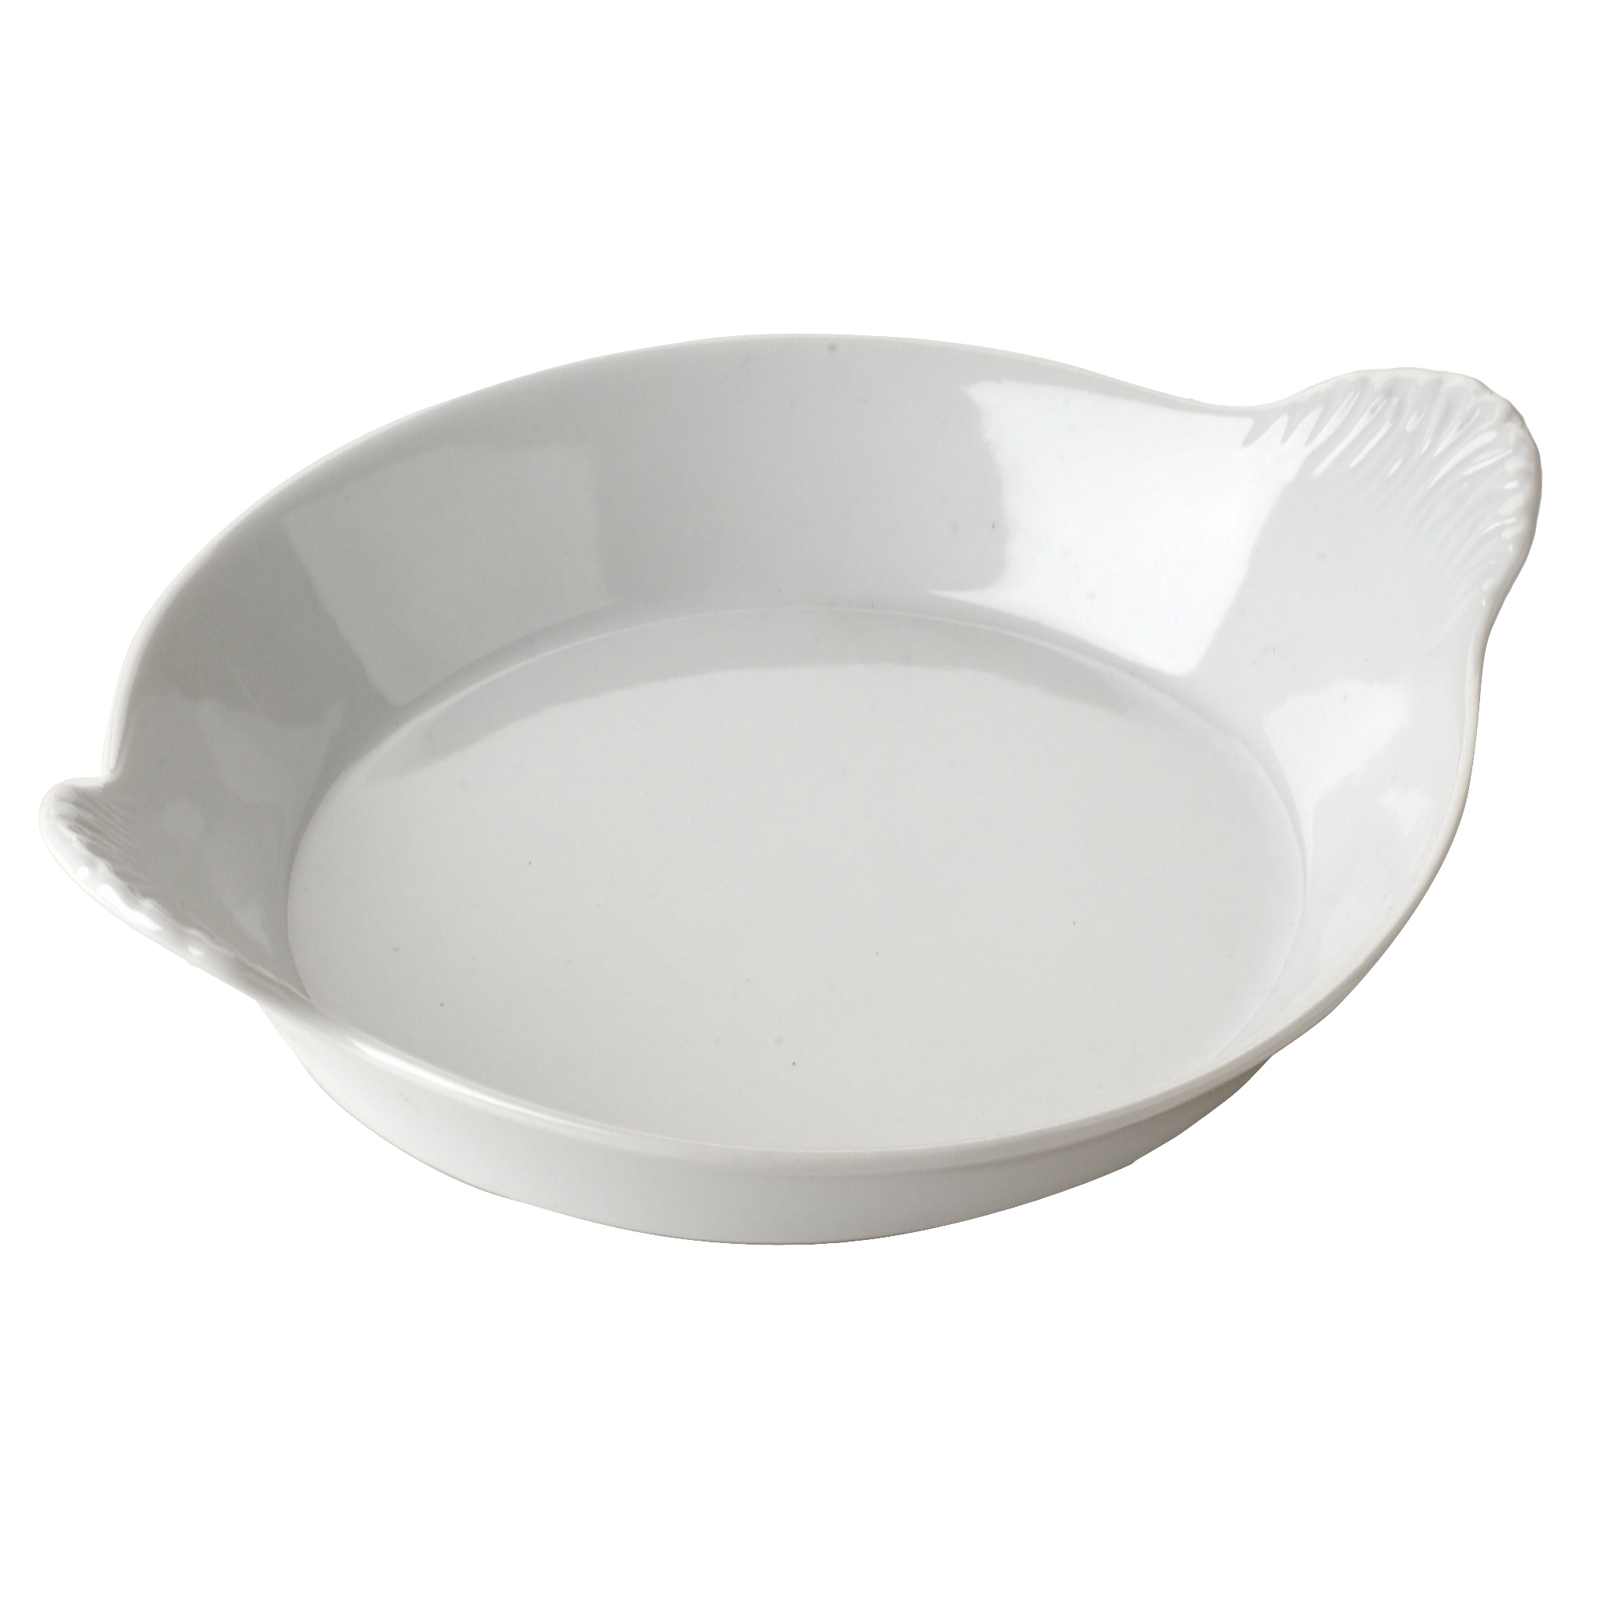 Round Eared Dish Small by BIA